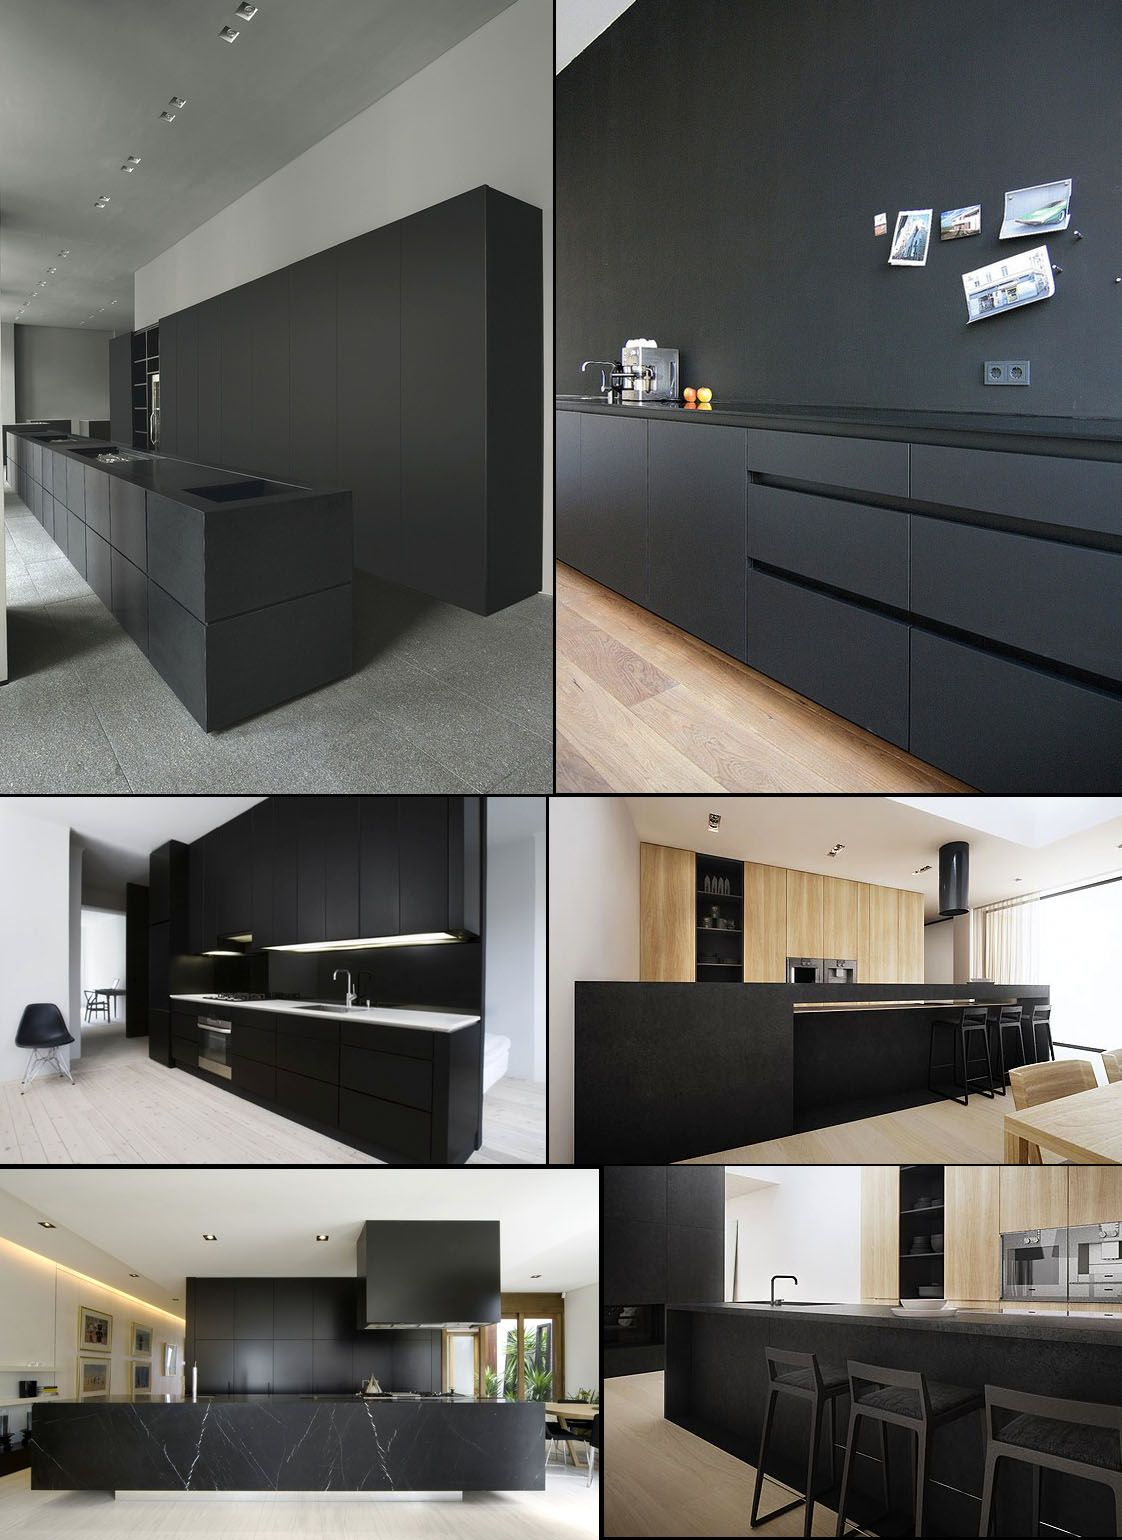 all black everything interior pinterest black kitchens real men have black kitchens white counters is a bit too much contrast though